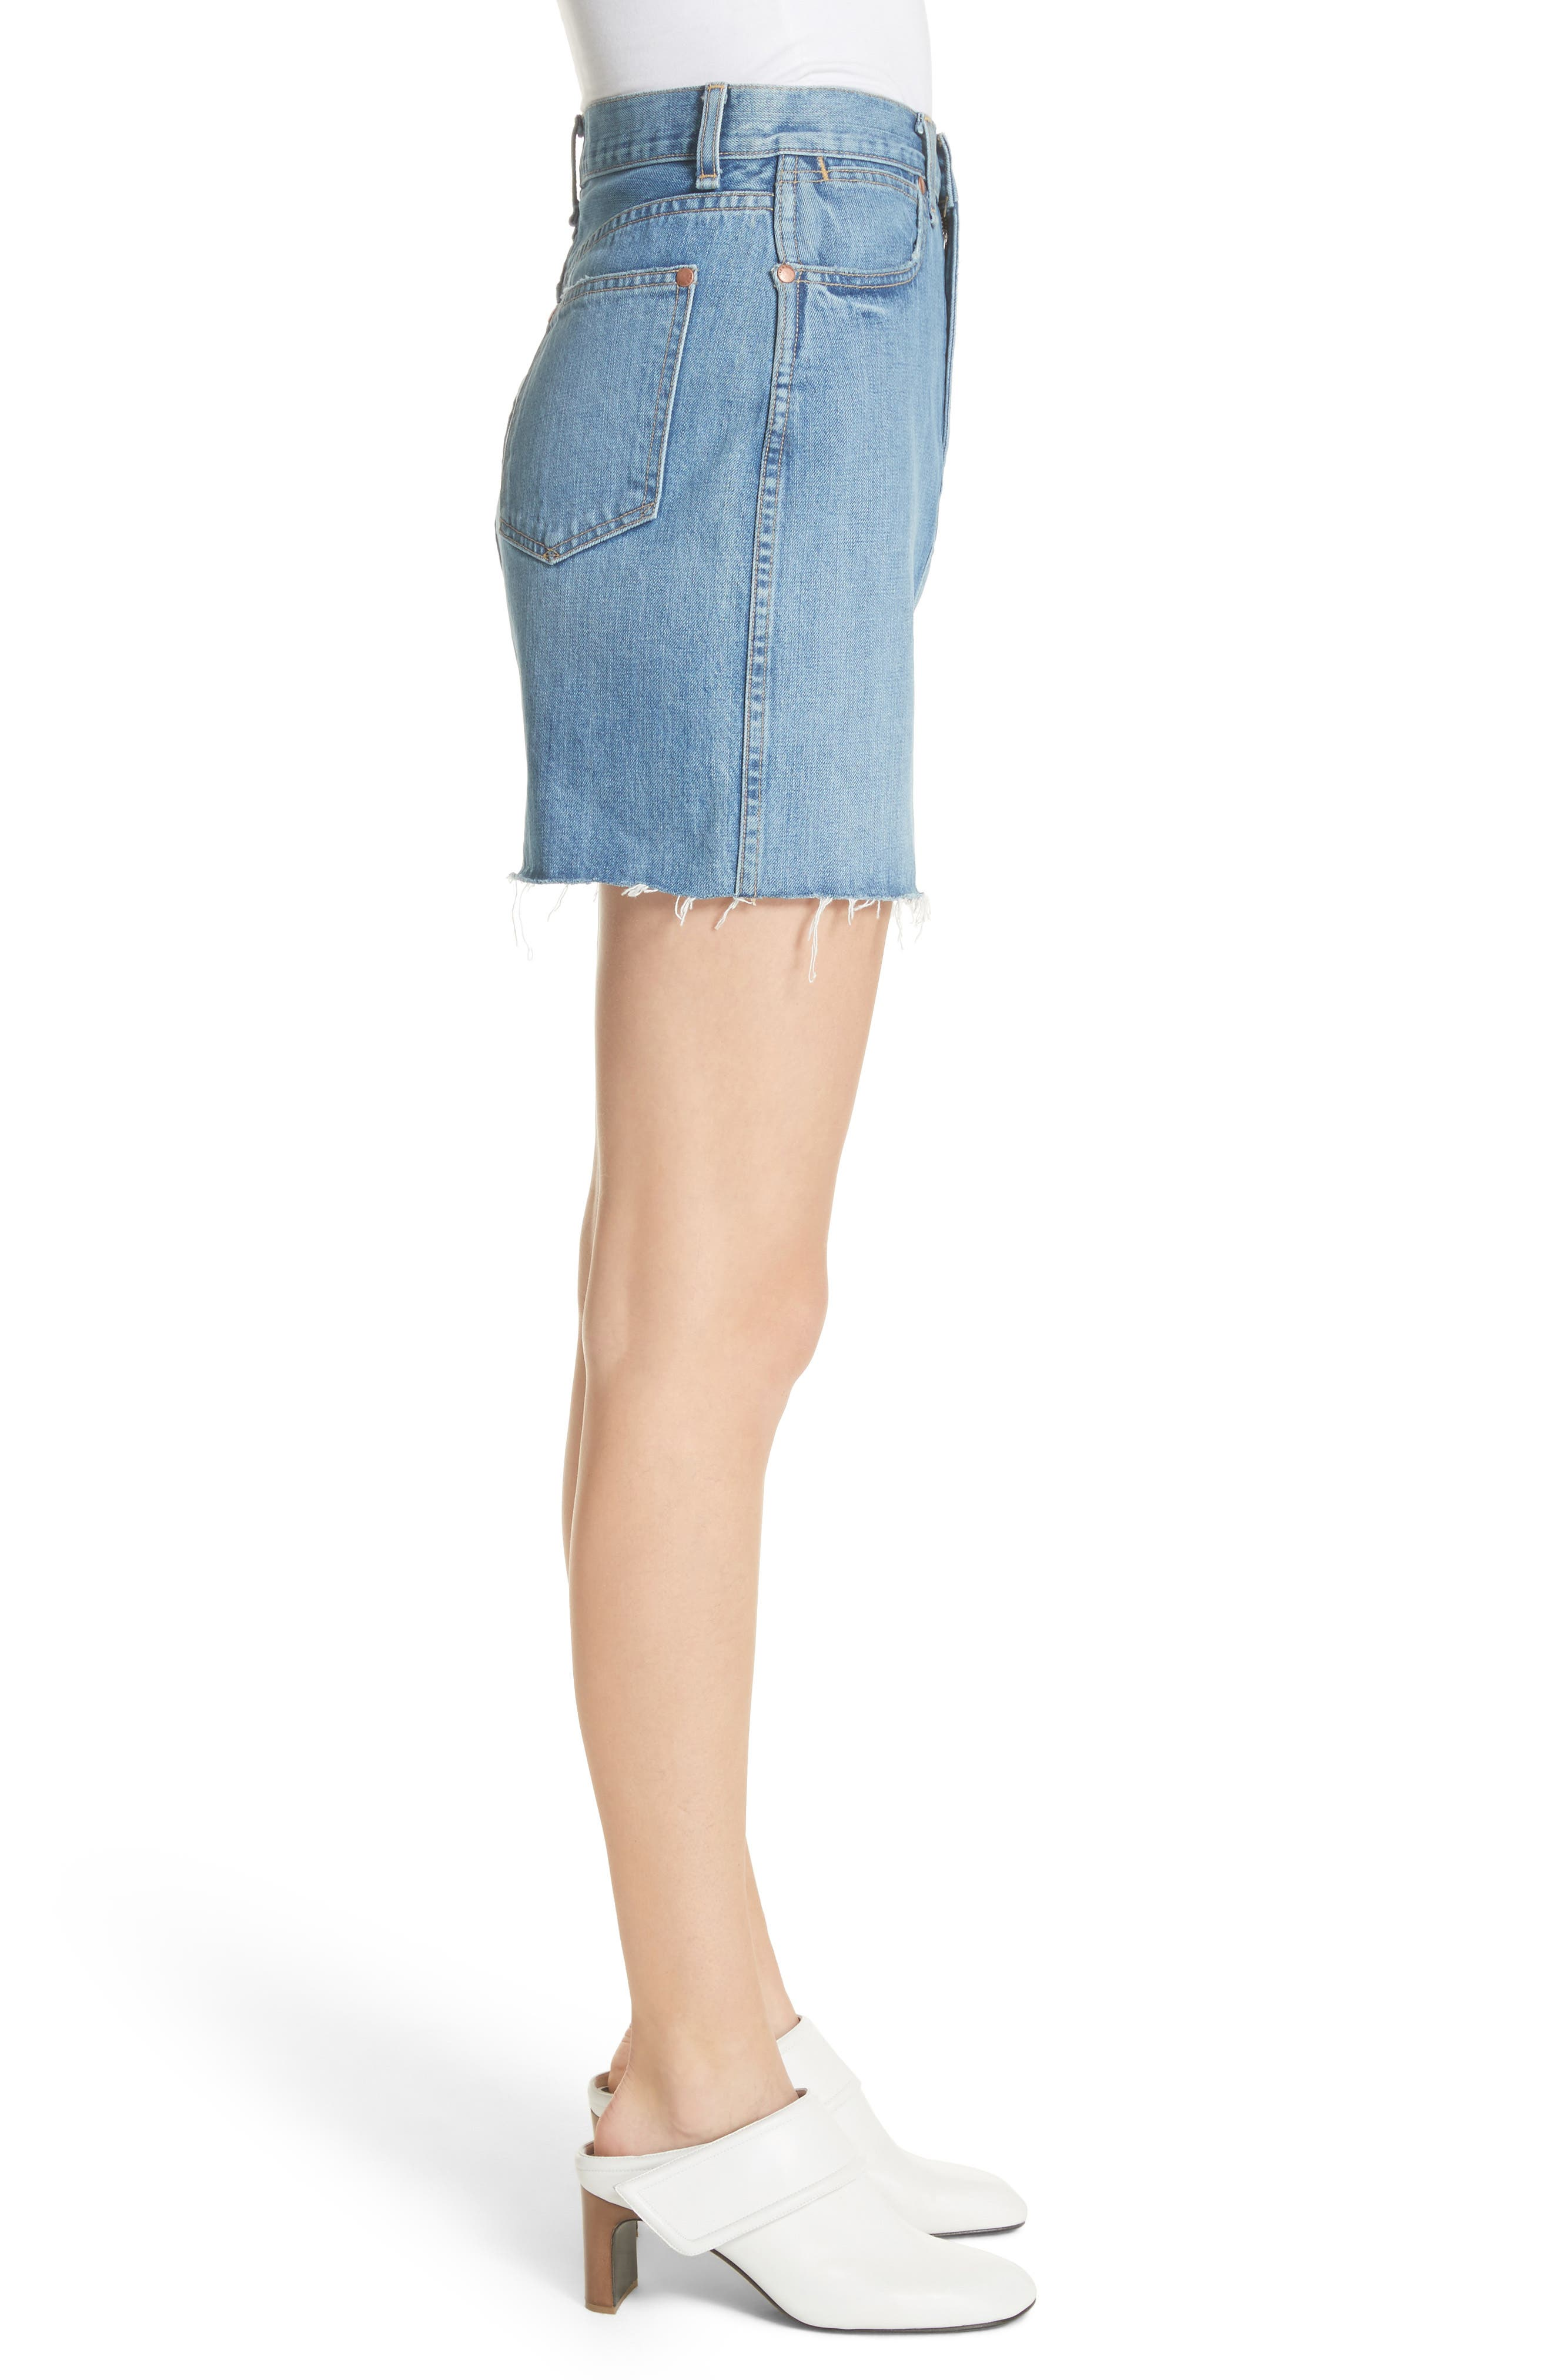 Moss High Waist Denim Miniskirt,                             Alternate thumbnail 3, color,                             420